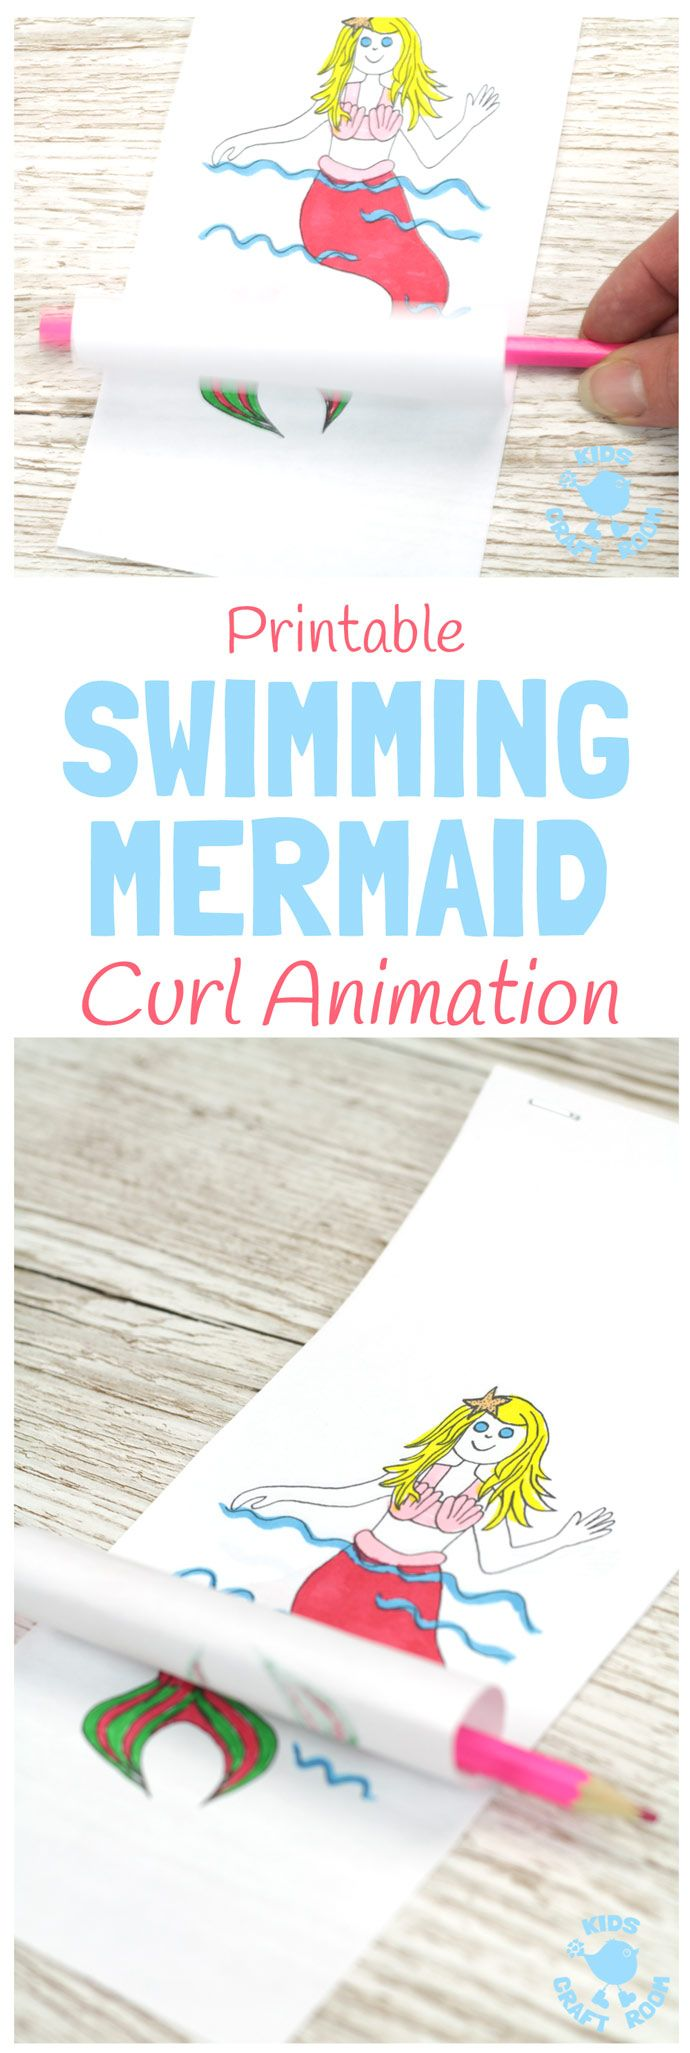 26 best kid vid fest images on pinterest stop motion animation swimming mermaid craft printable curl animation fandeluxe Gallery